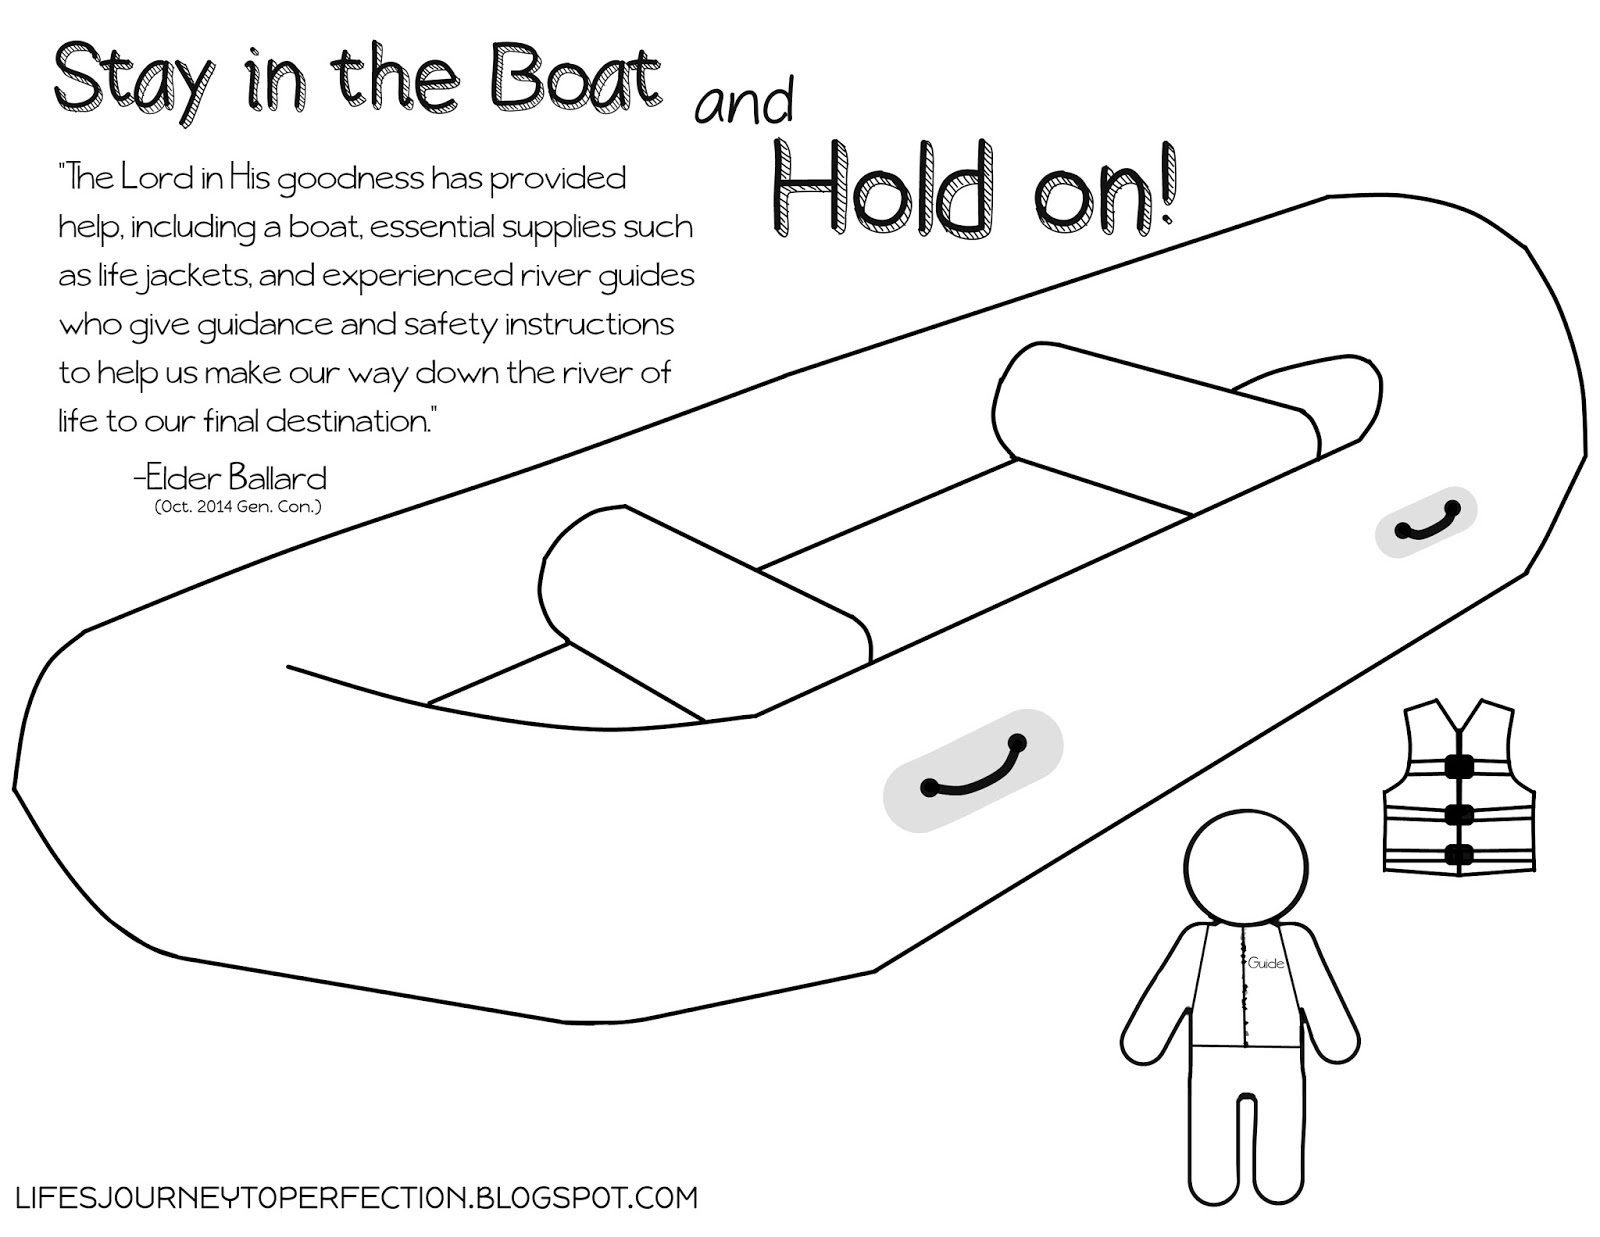 stay in the boat and hold on fhe plans and quotes from elder